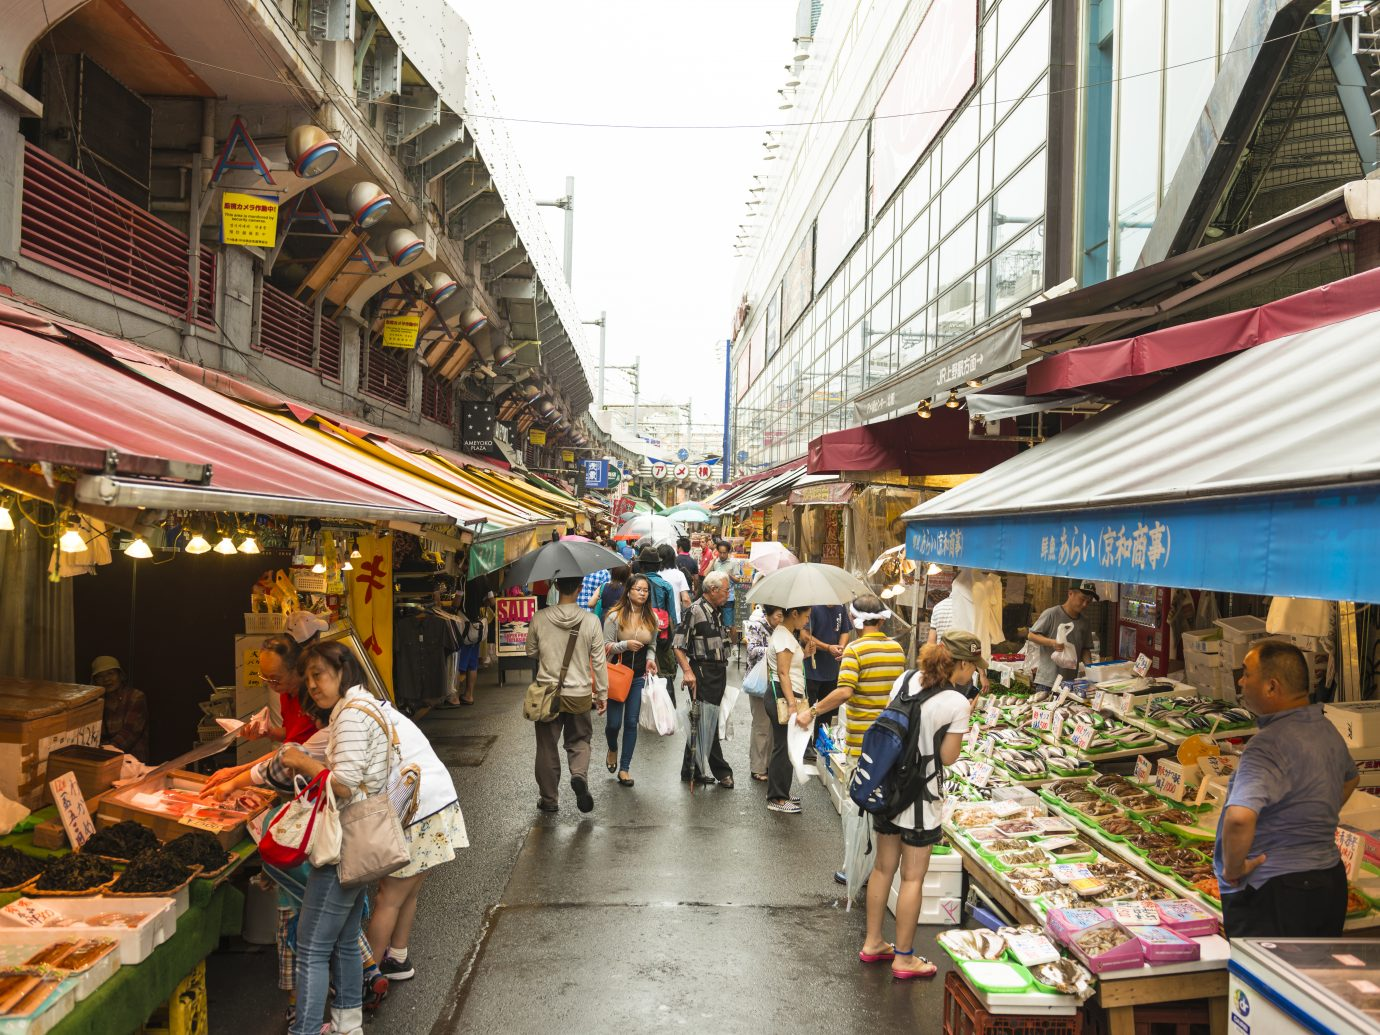 The outer market, fish stalls and many people, some with umbrellas on rainy day buying fish and other seafood.